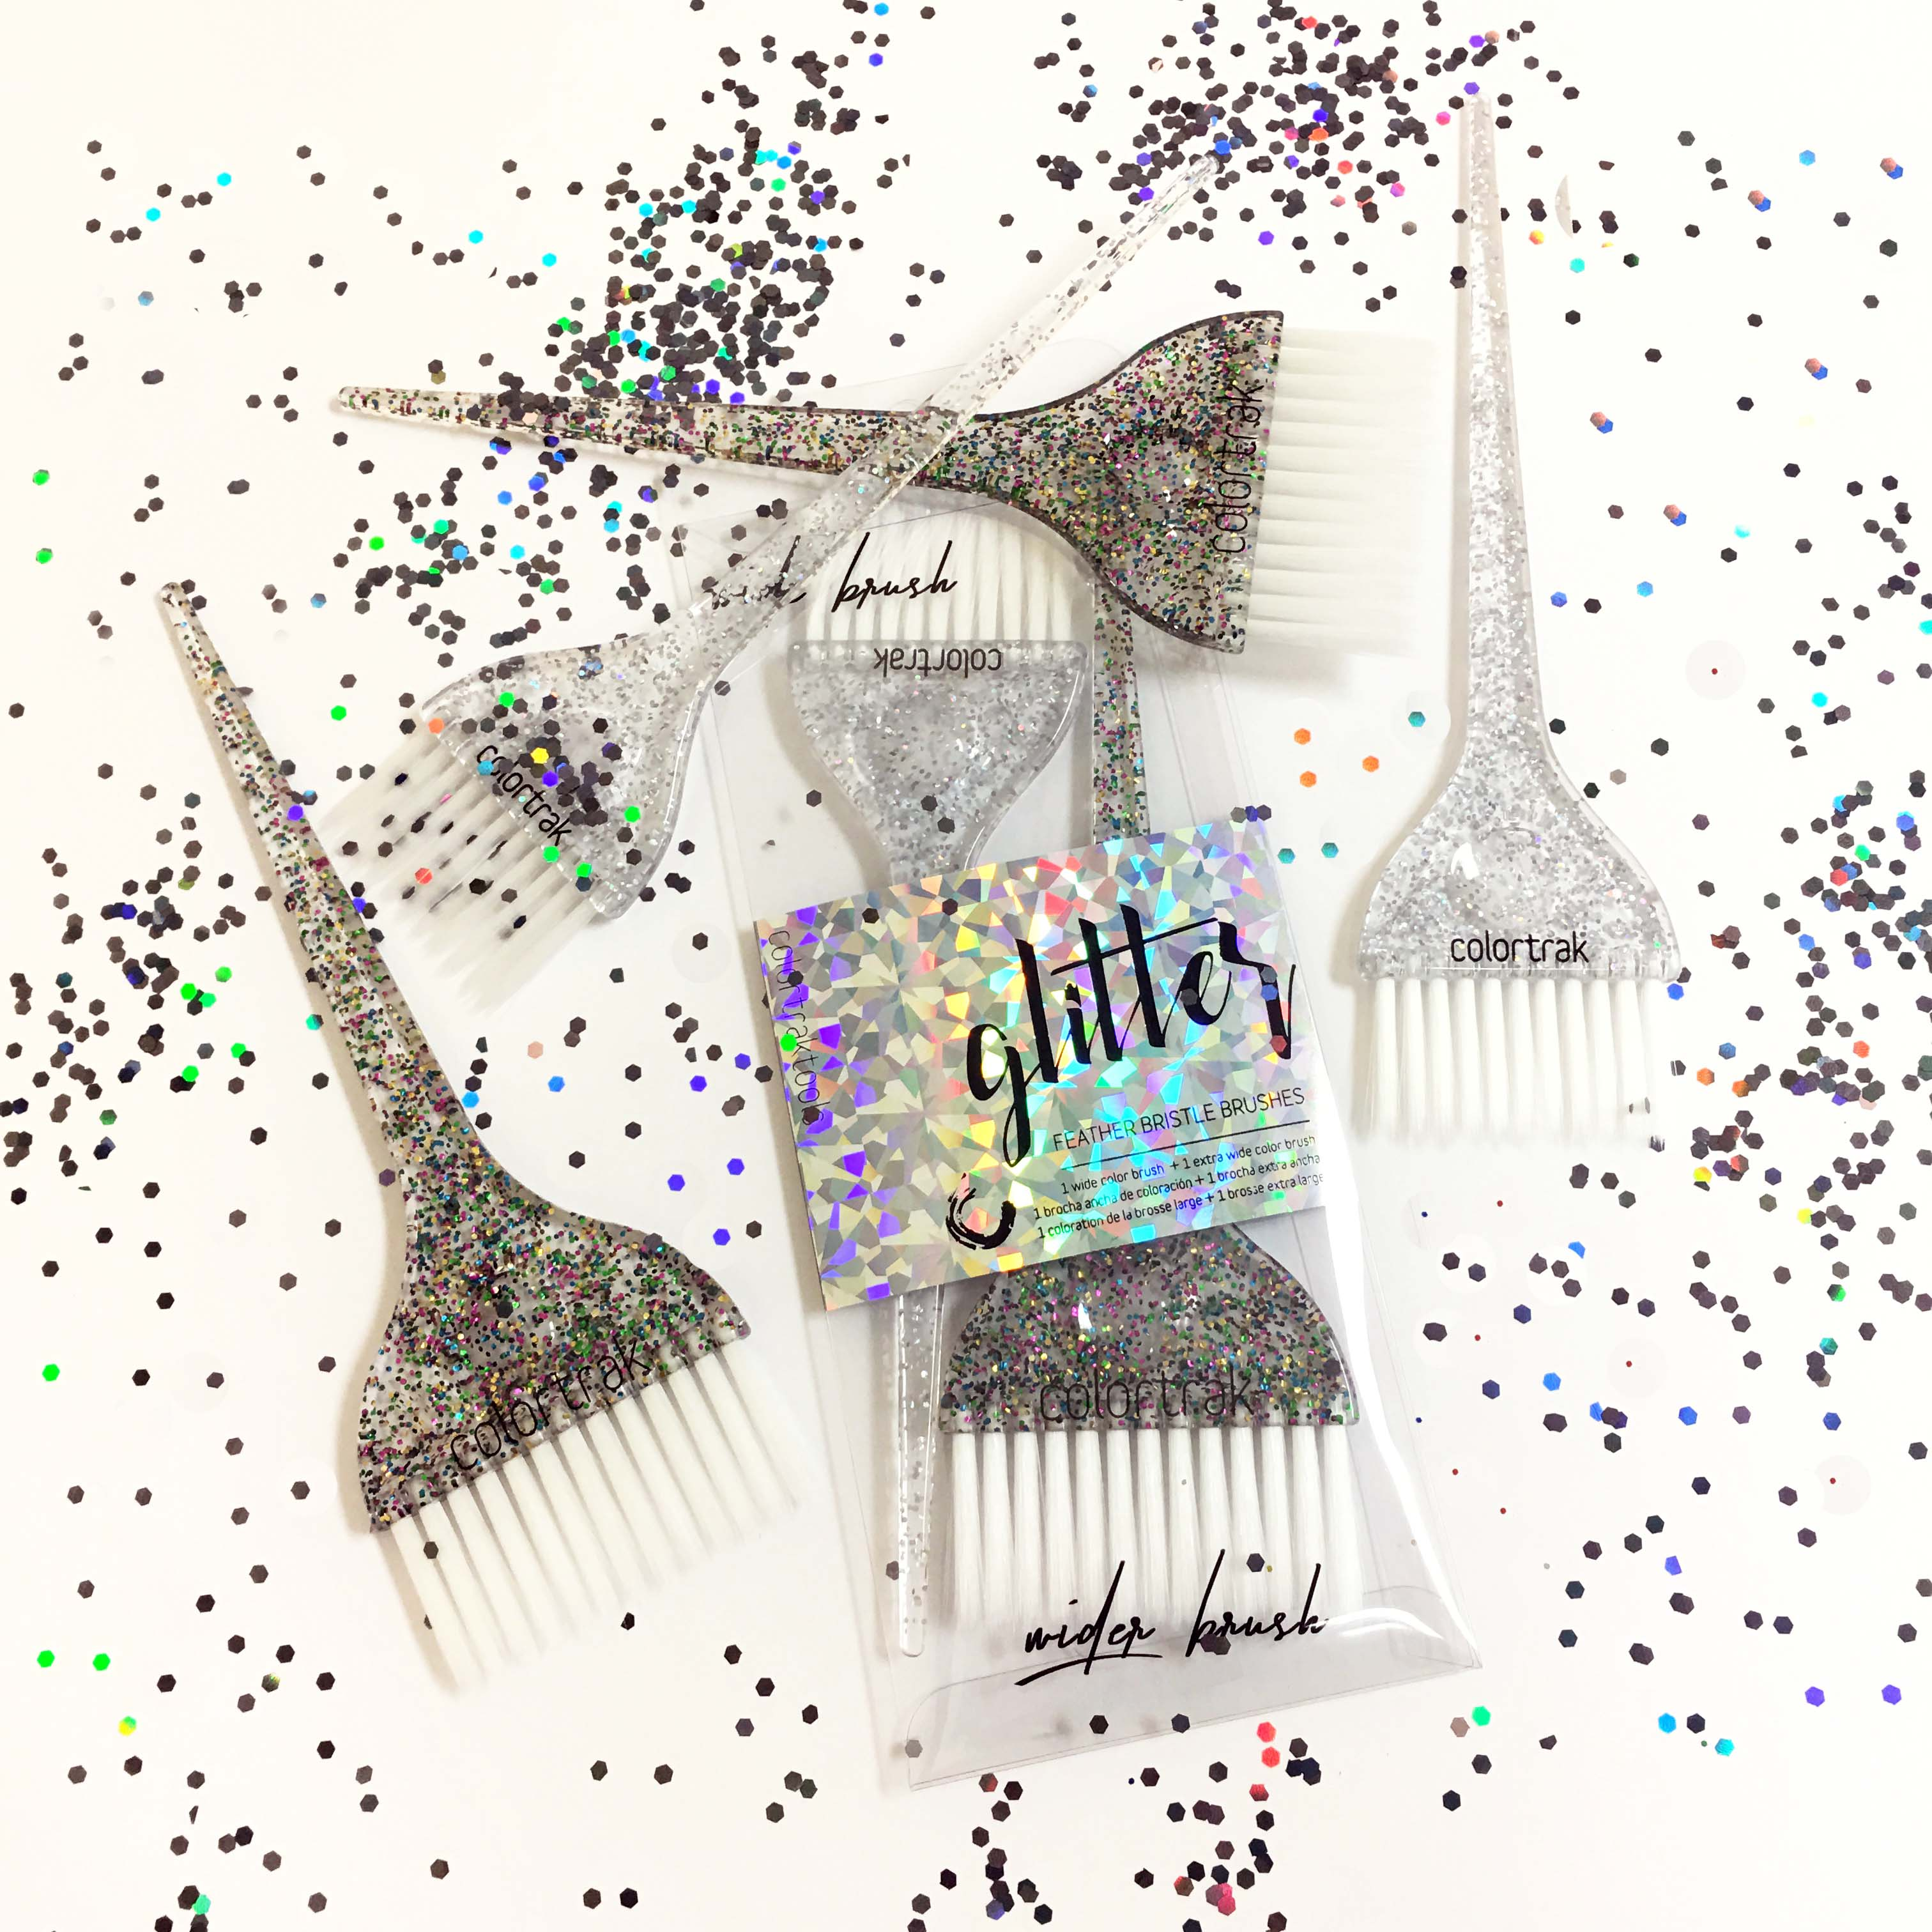 Glitter on With Colortrak's Glitter Brushes